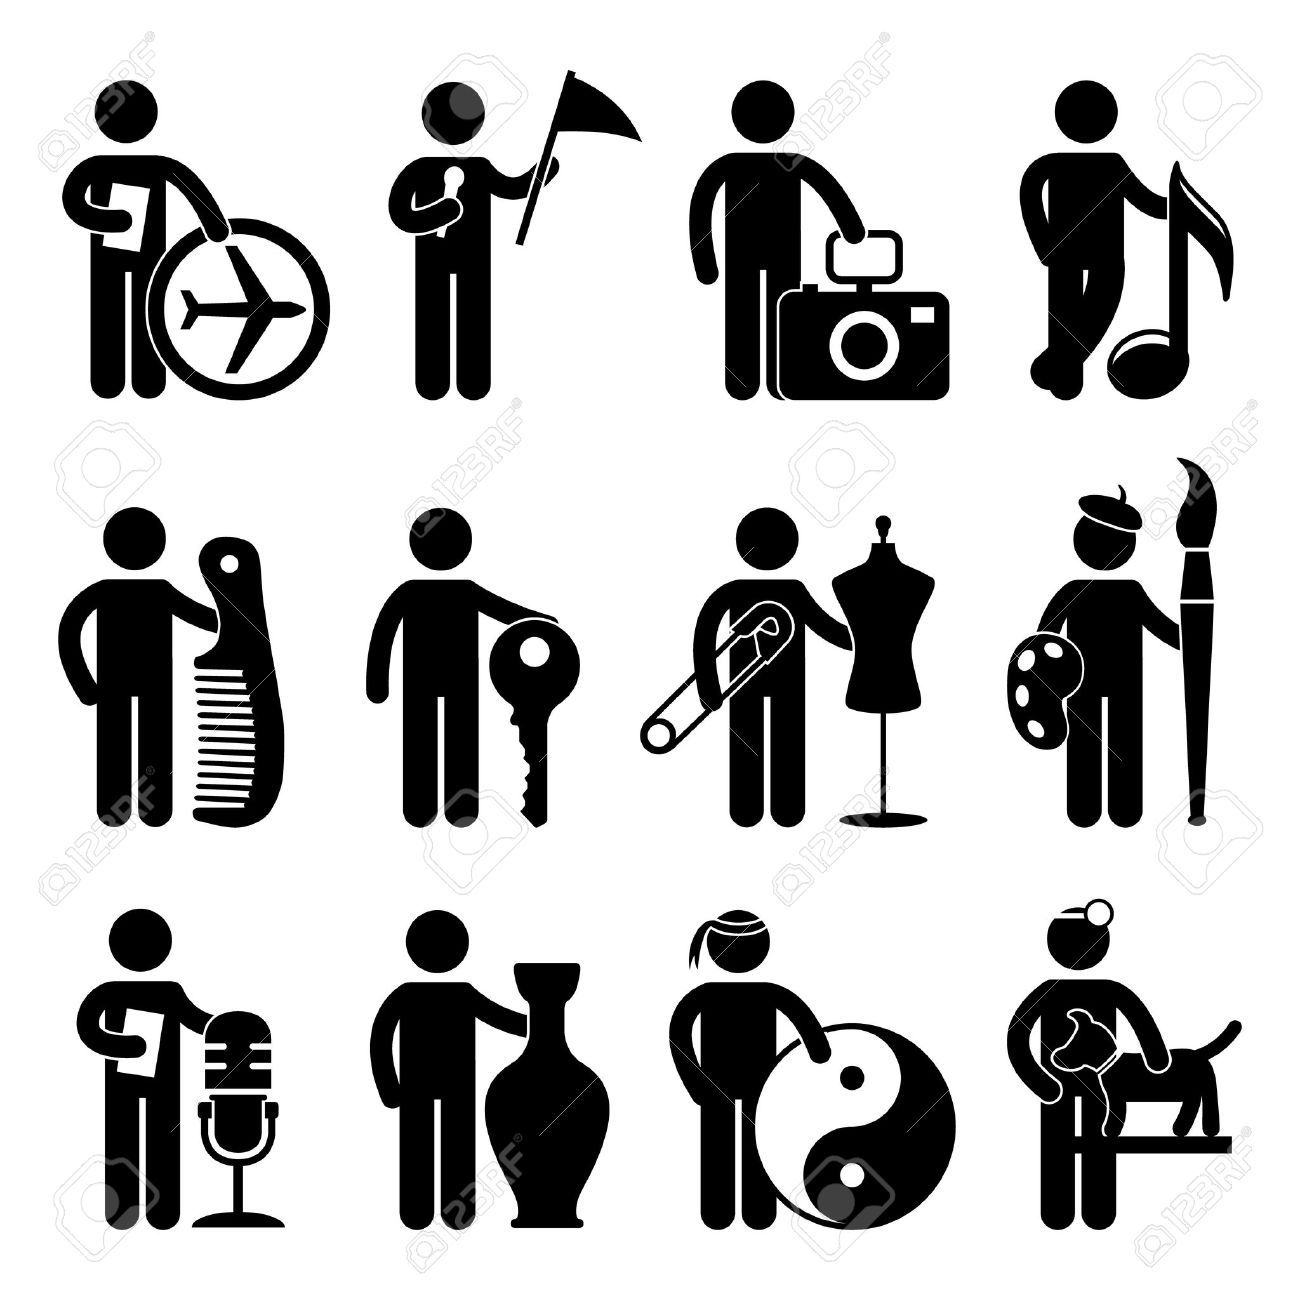 Tour Agent Guide Photographer Musician Barber Locksmith Tailor Painter DJ Martial Art Guru Veterinarian Animal Doctor Job Occupation Sign Pictogram Symbol Icon Stock Vector - 18797473